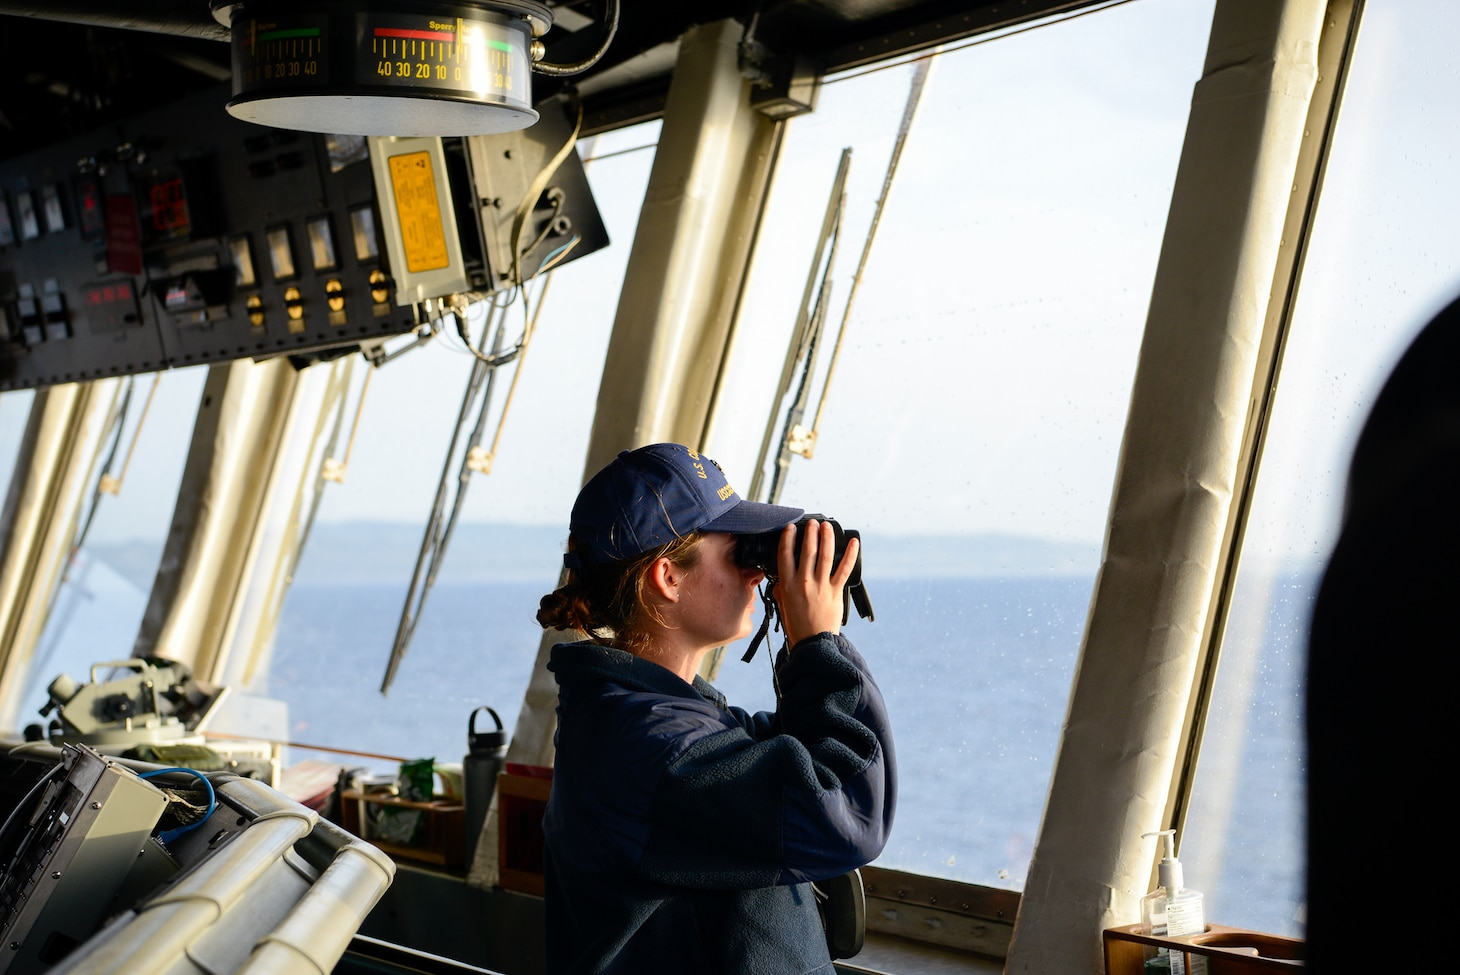 210522-G-ID129-4064 MEDITERRANEAN SEA (May 22, 2021) Seaman Cheyenne Solis Headlam looks out from the bridge as they transit out of the Mediterranean Sea, May 22, 2021. Hamilton is on a routine deployment in the U.S. Sixth Fleet area of operations in support of U.S. national interests and security in Europe and Africa. (U.S. Coast Guard photo by Petty Officer 3rd Class Sydney Phoenix)